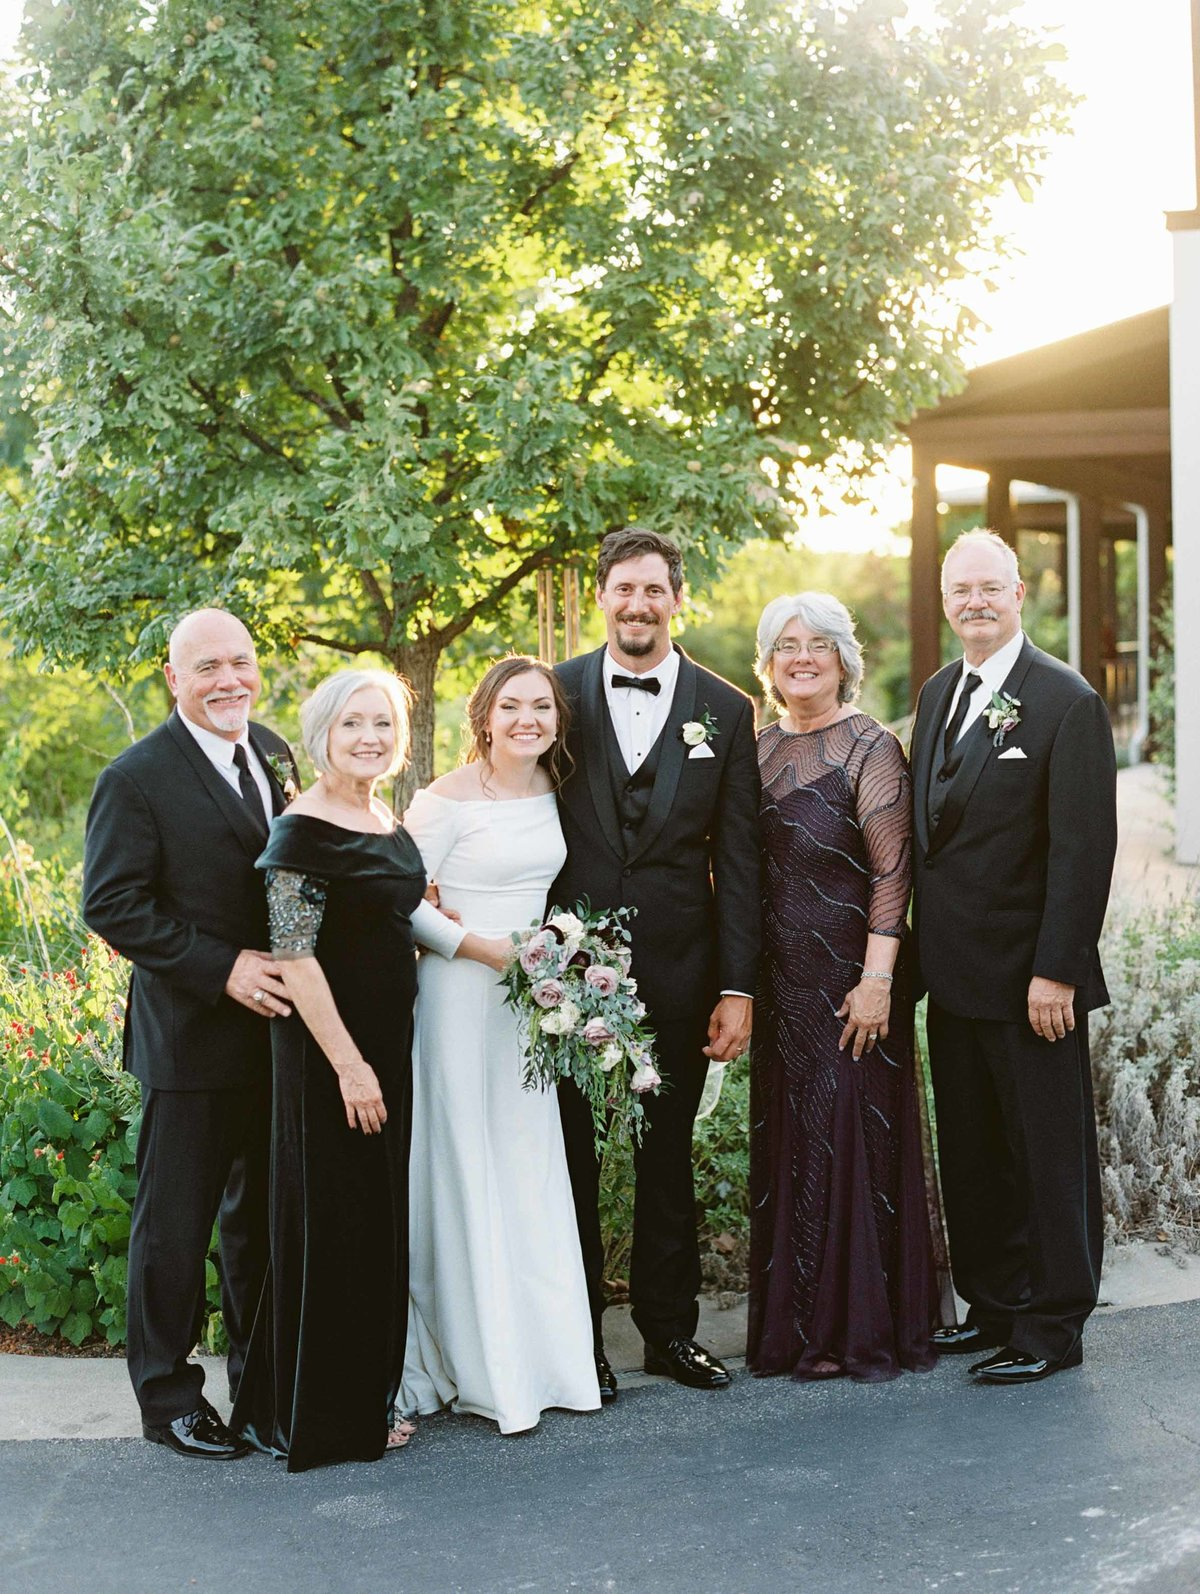 Angel_owens_photography_wedding_oliviarobert172